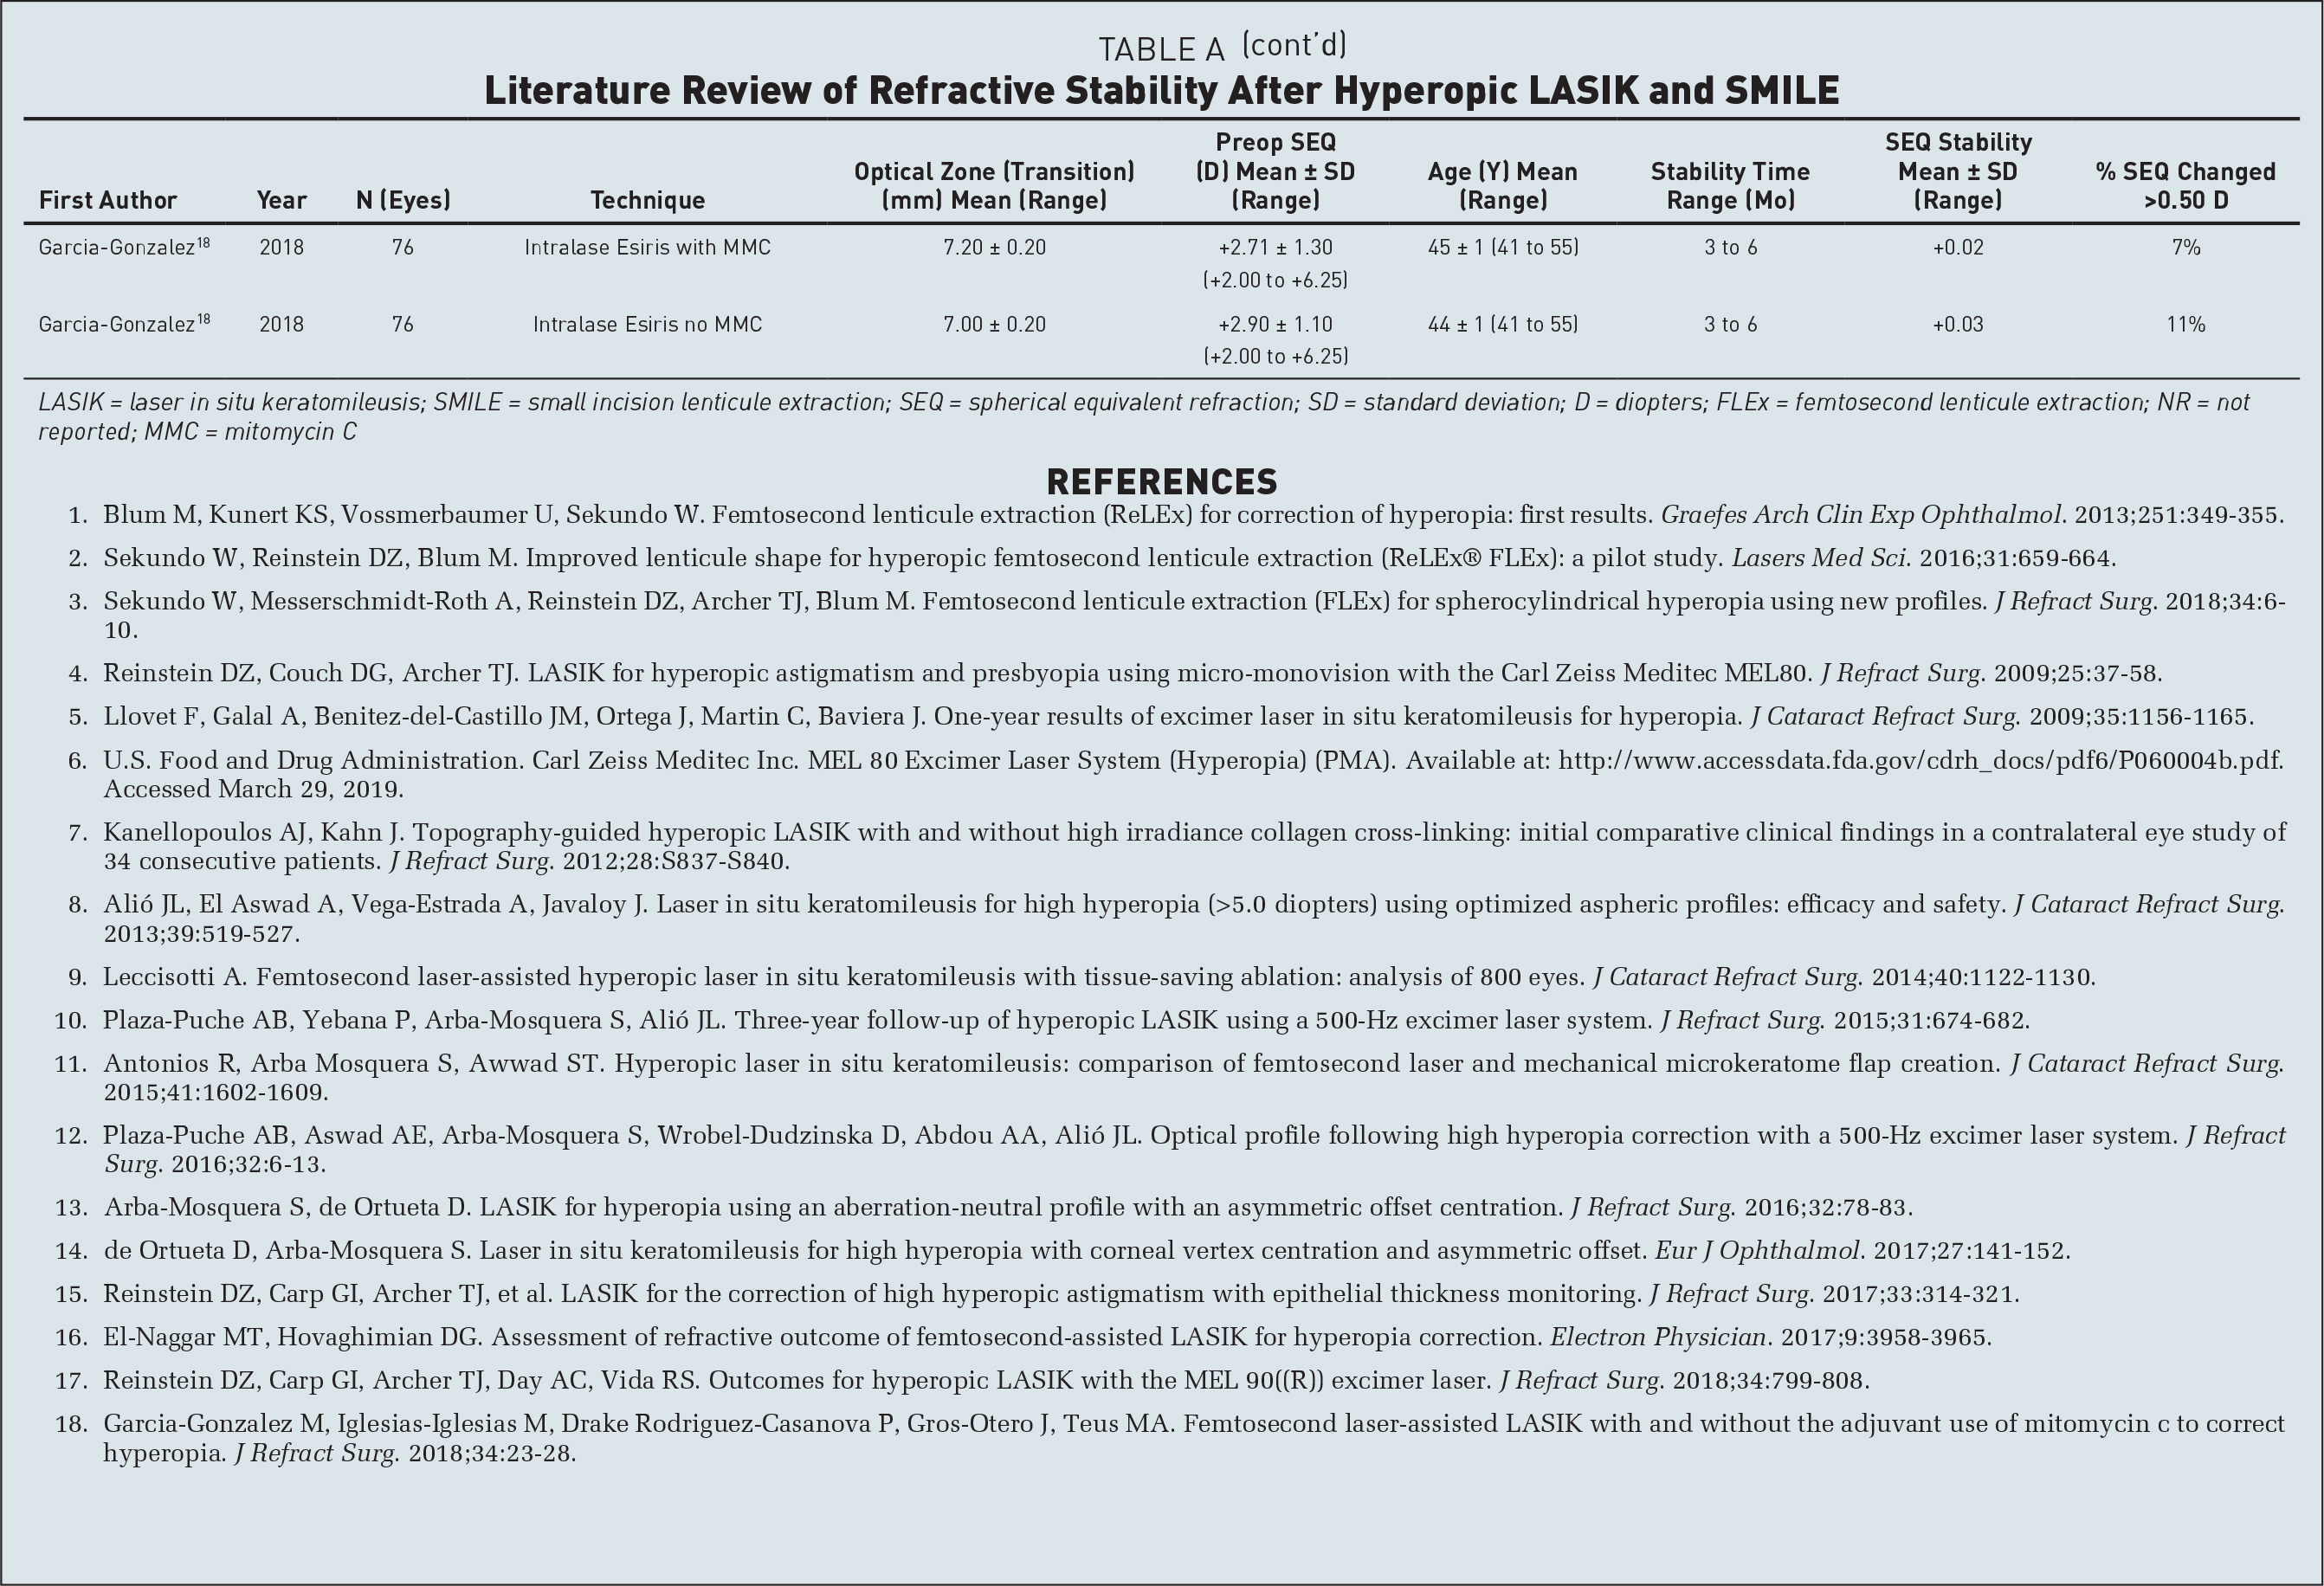 Literature Review of Refractive Stability After Hyperopic LASIK and SMILE